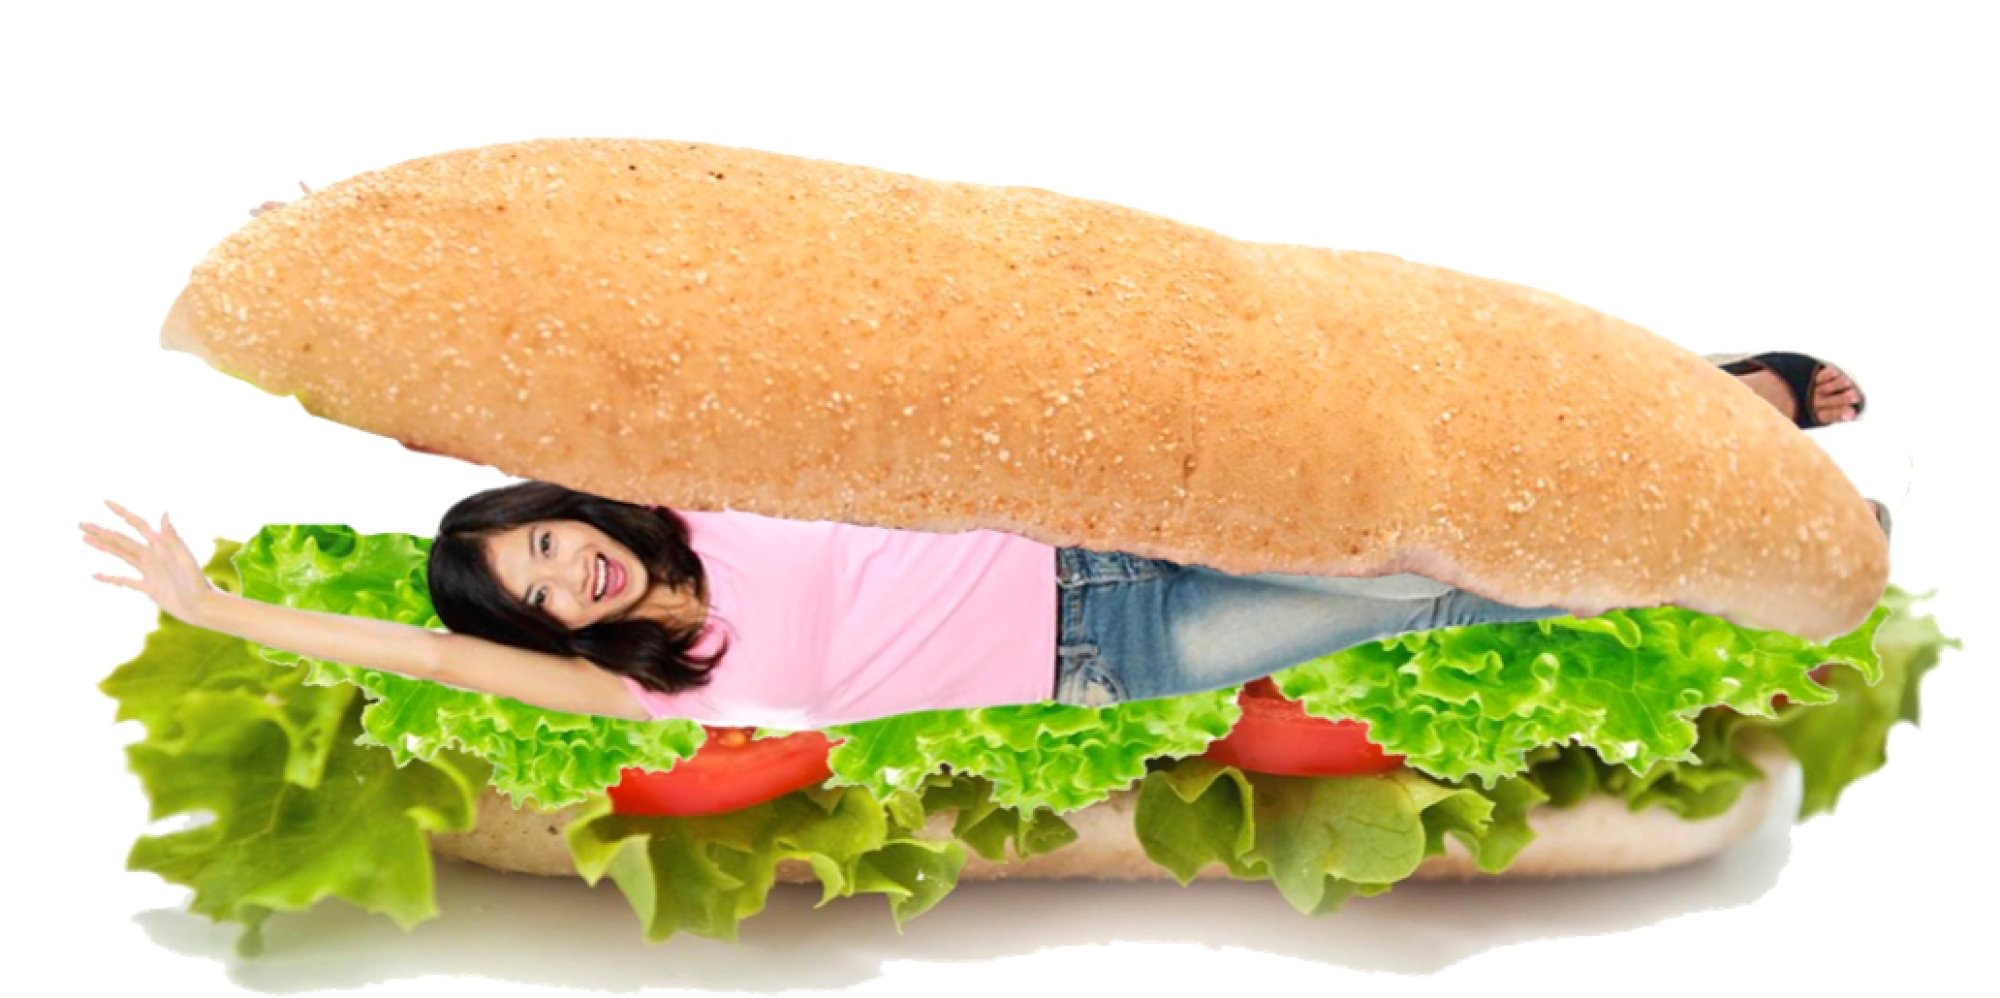 Mom in the Sandwich